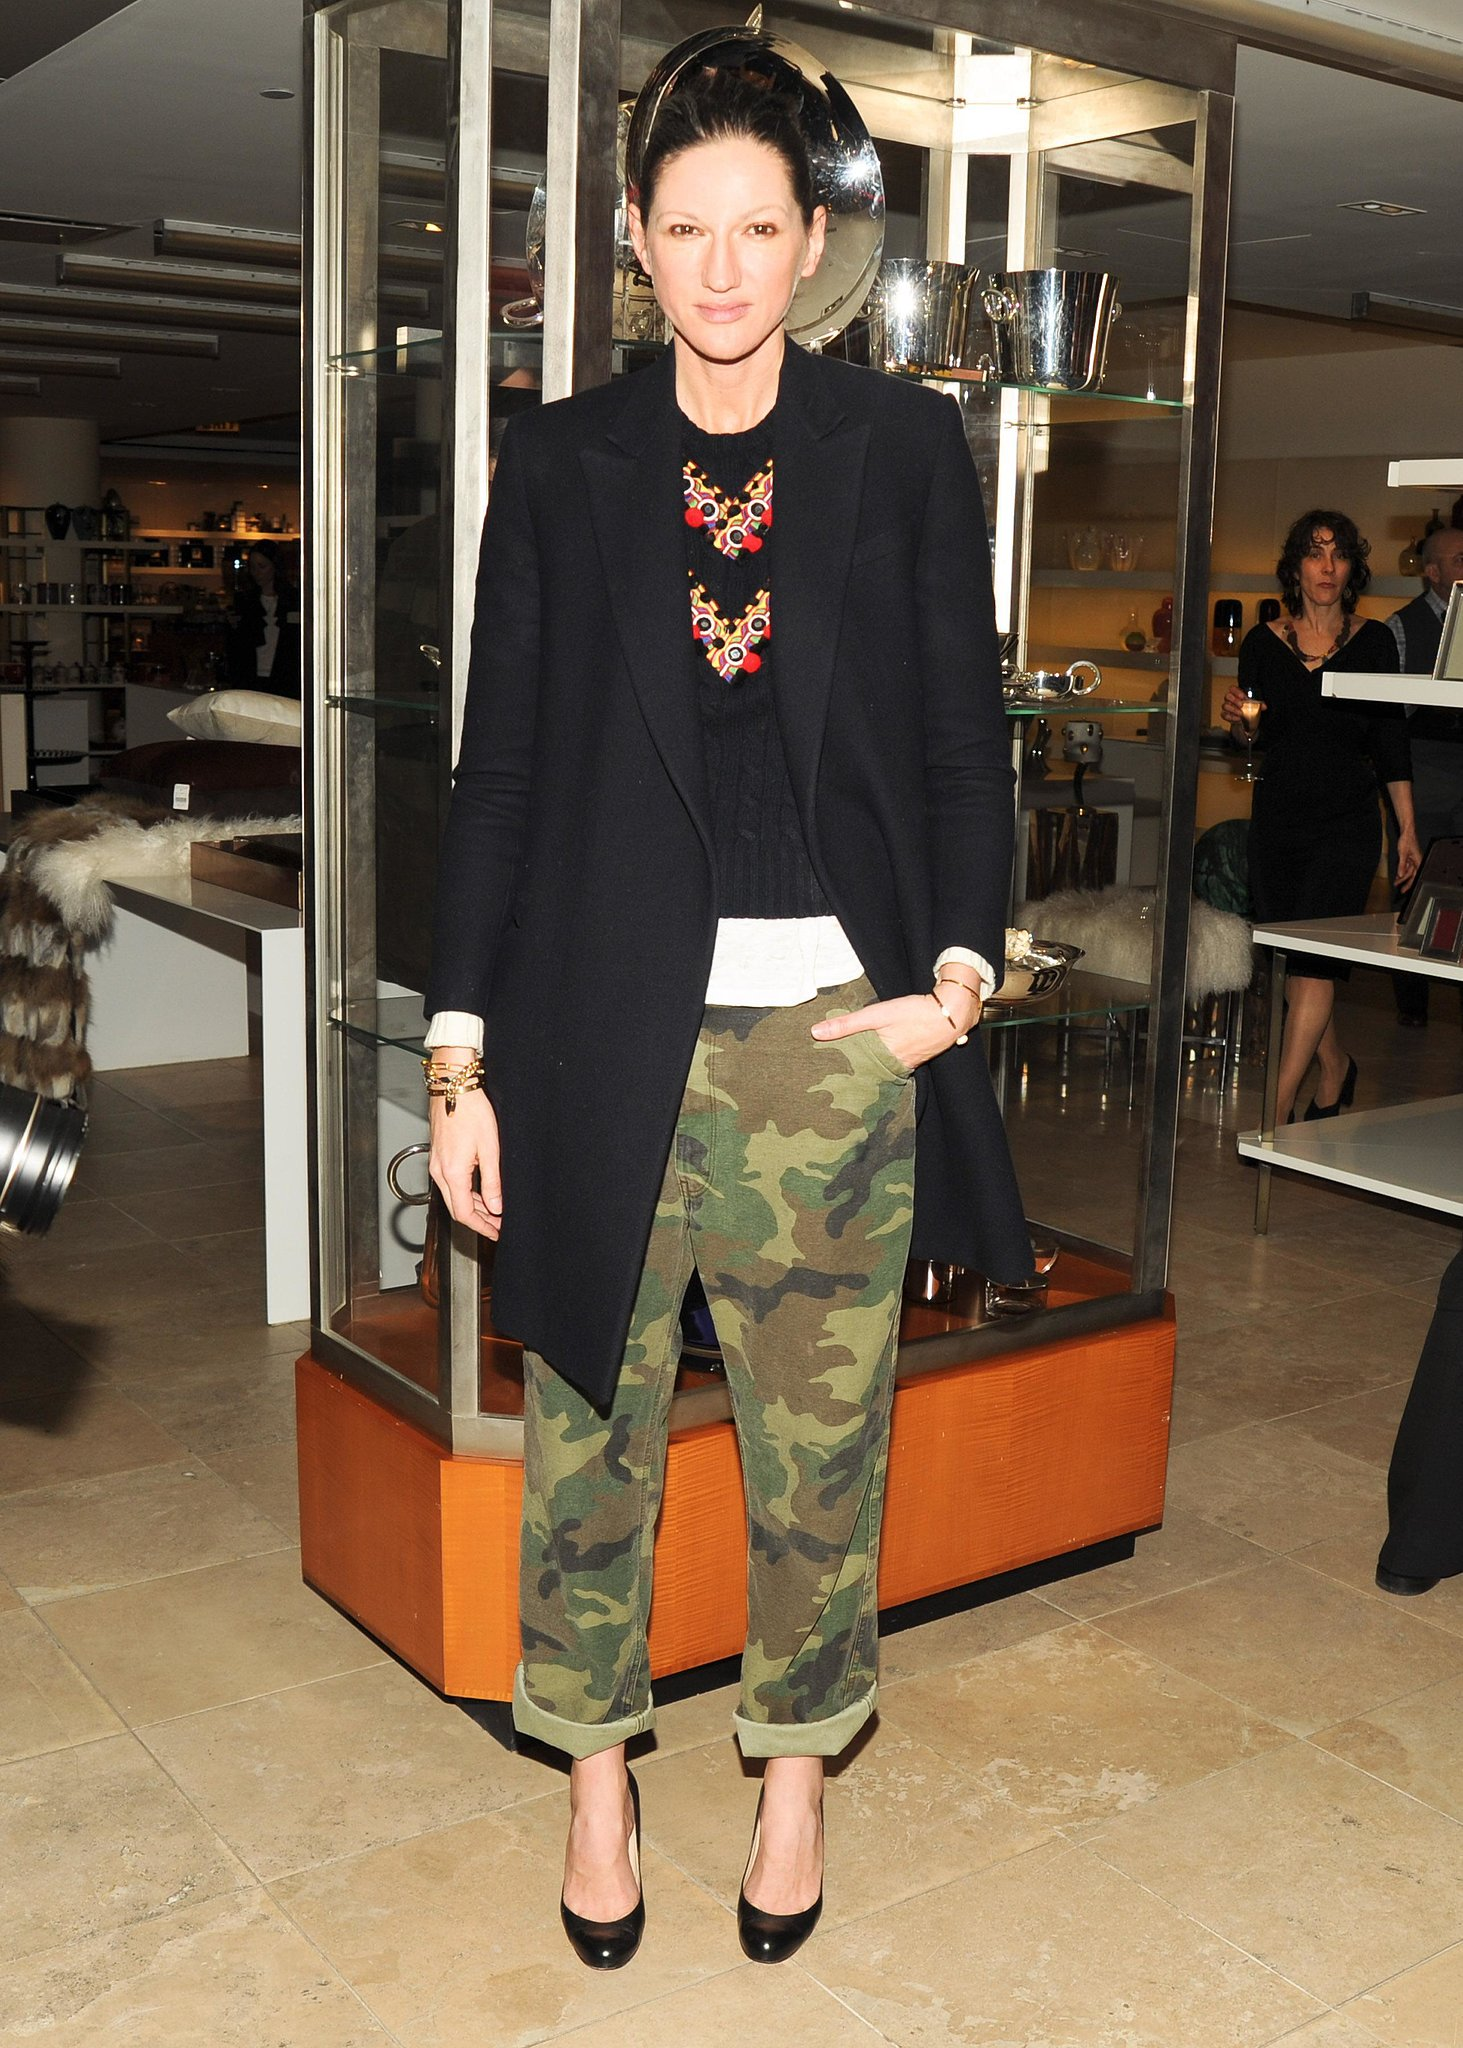 Before most of us even knew we liked camo, she was rocking the print in